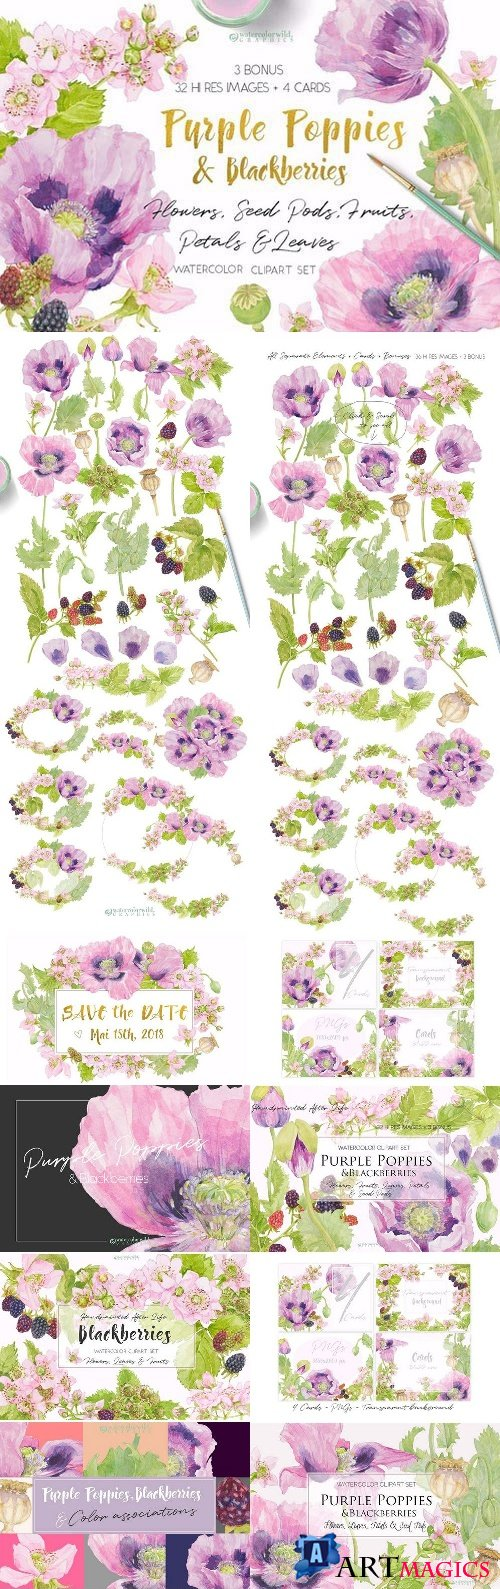 Purple Poppies & Blackberries-Clipart - 1575670